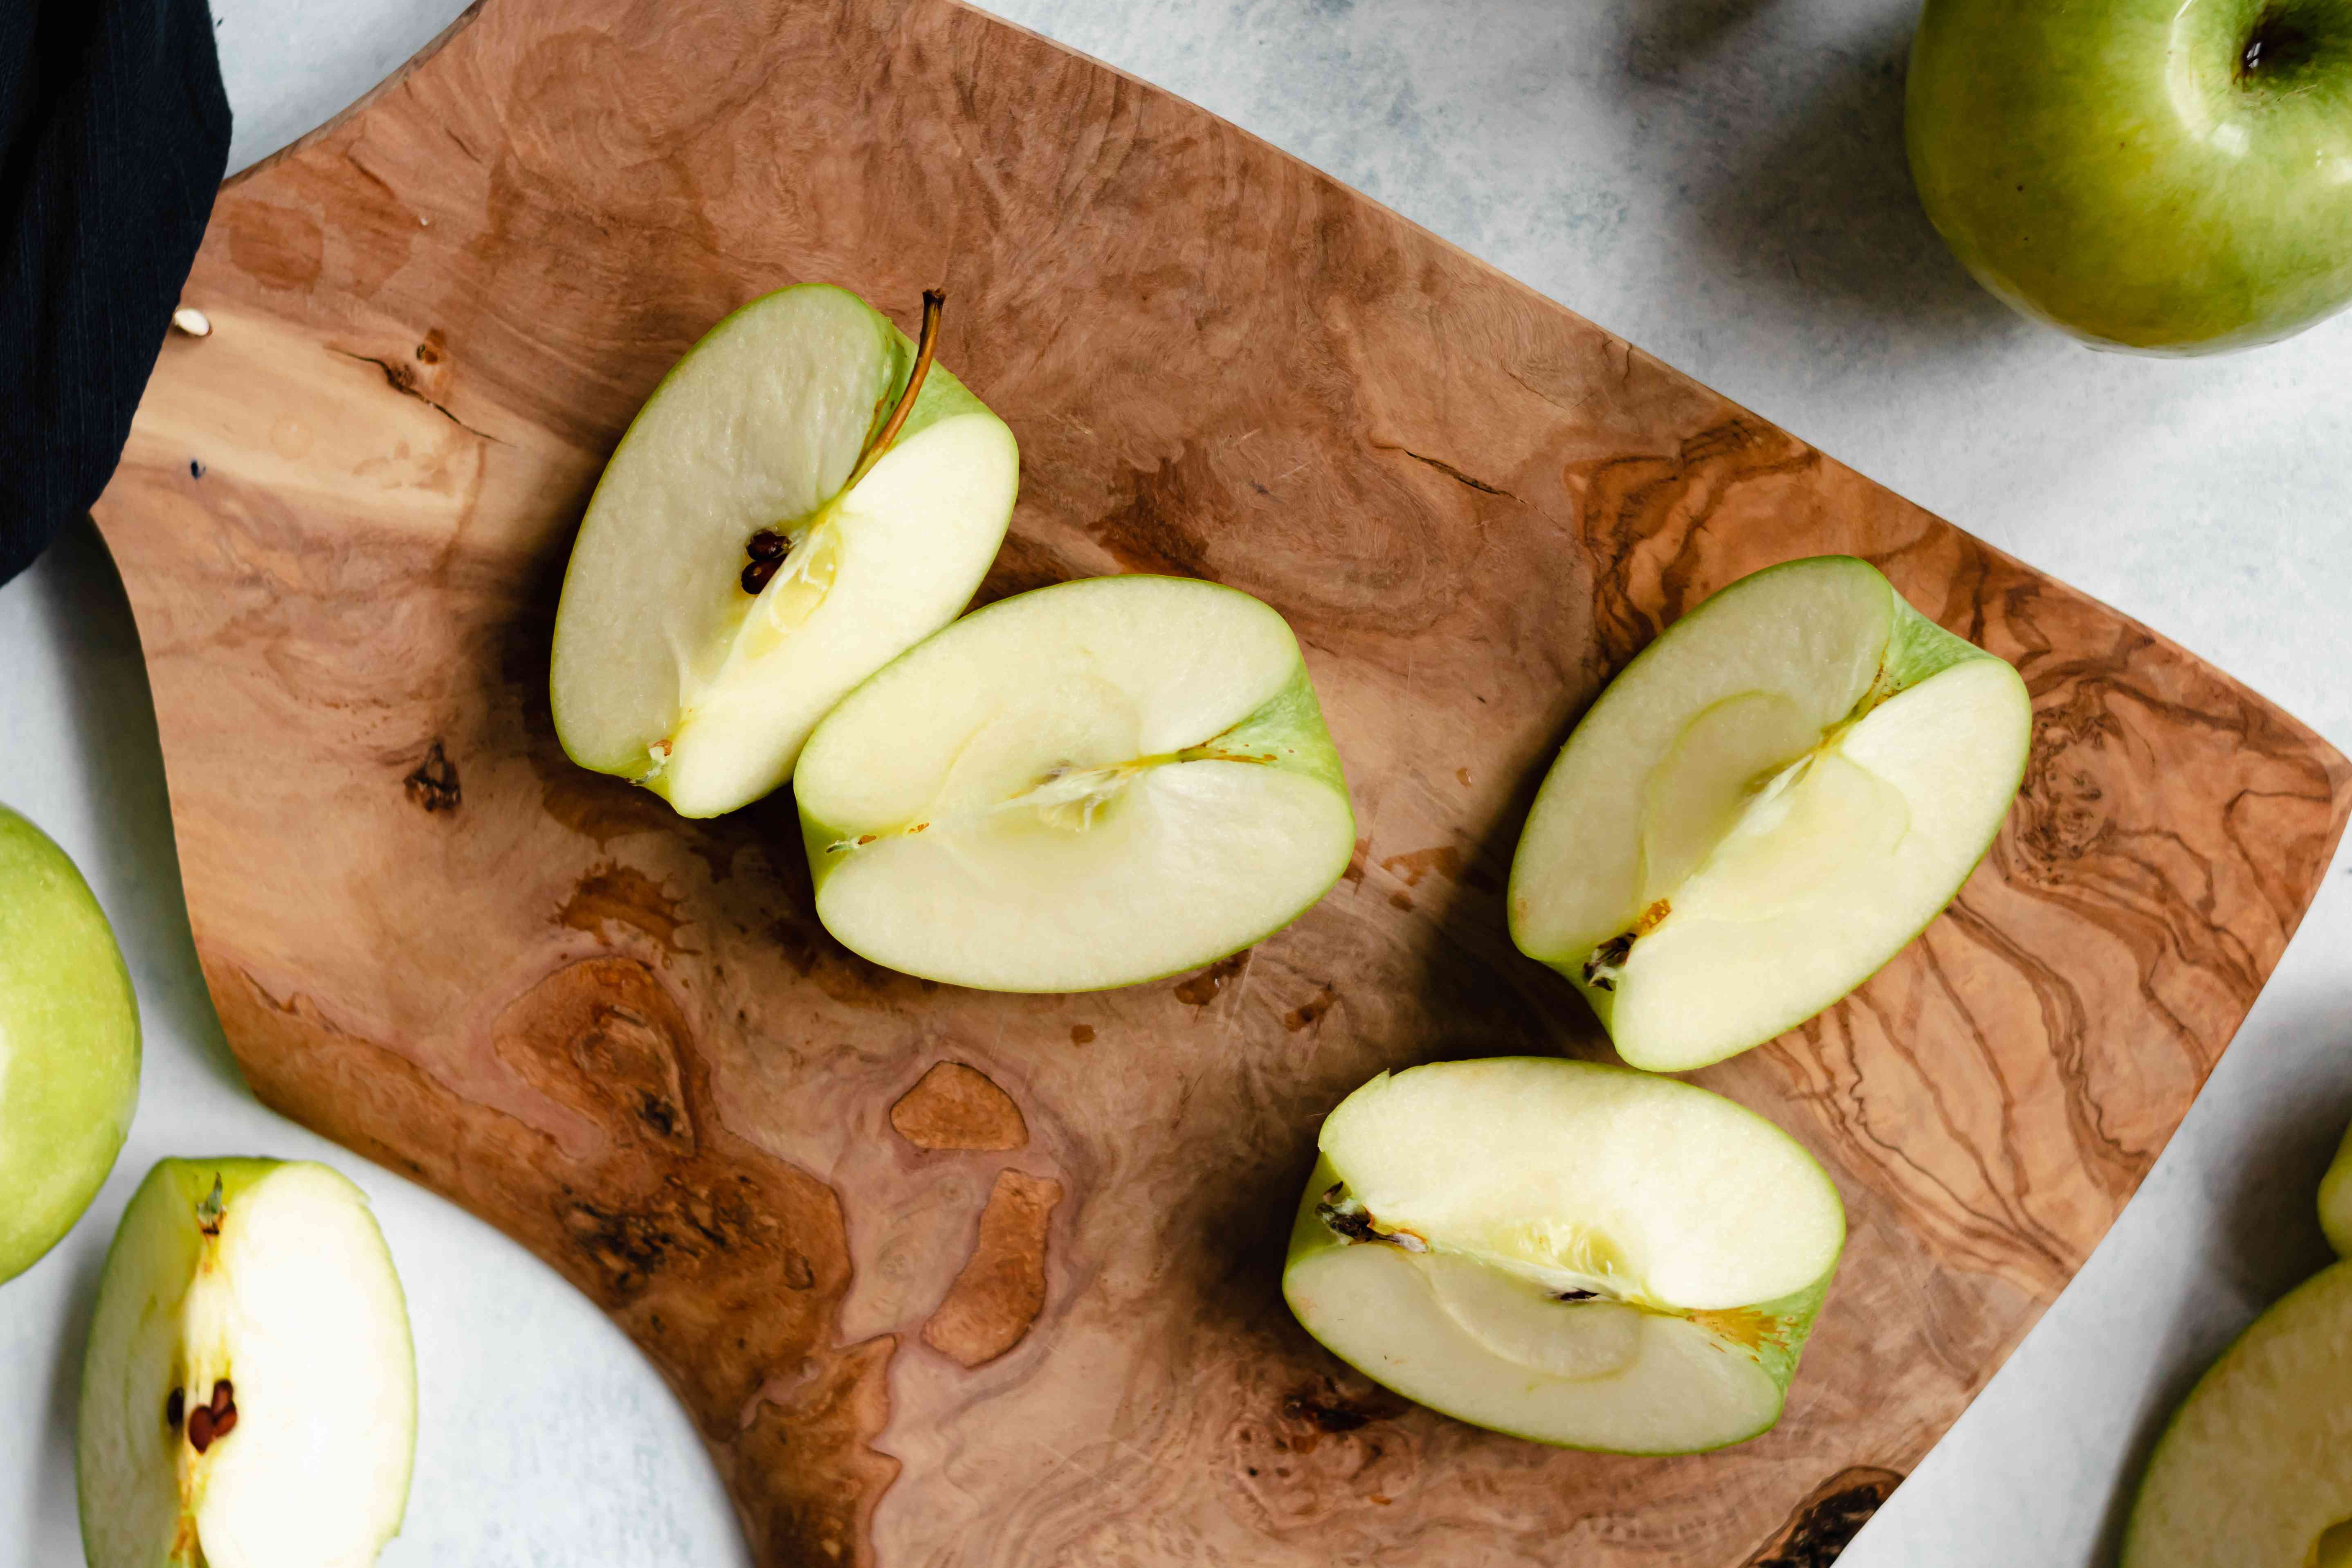 Chopped apples on a wooden cutting board to make an apple butter recipe.